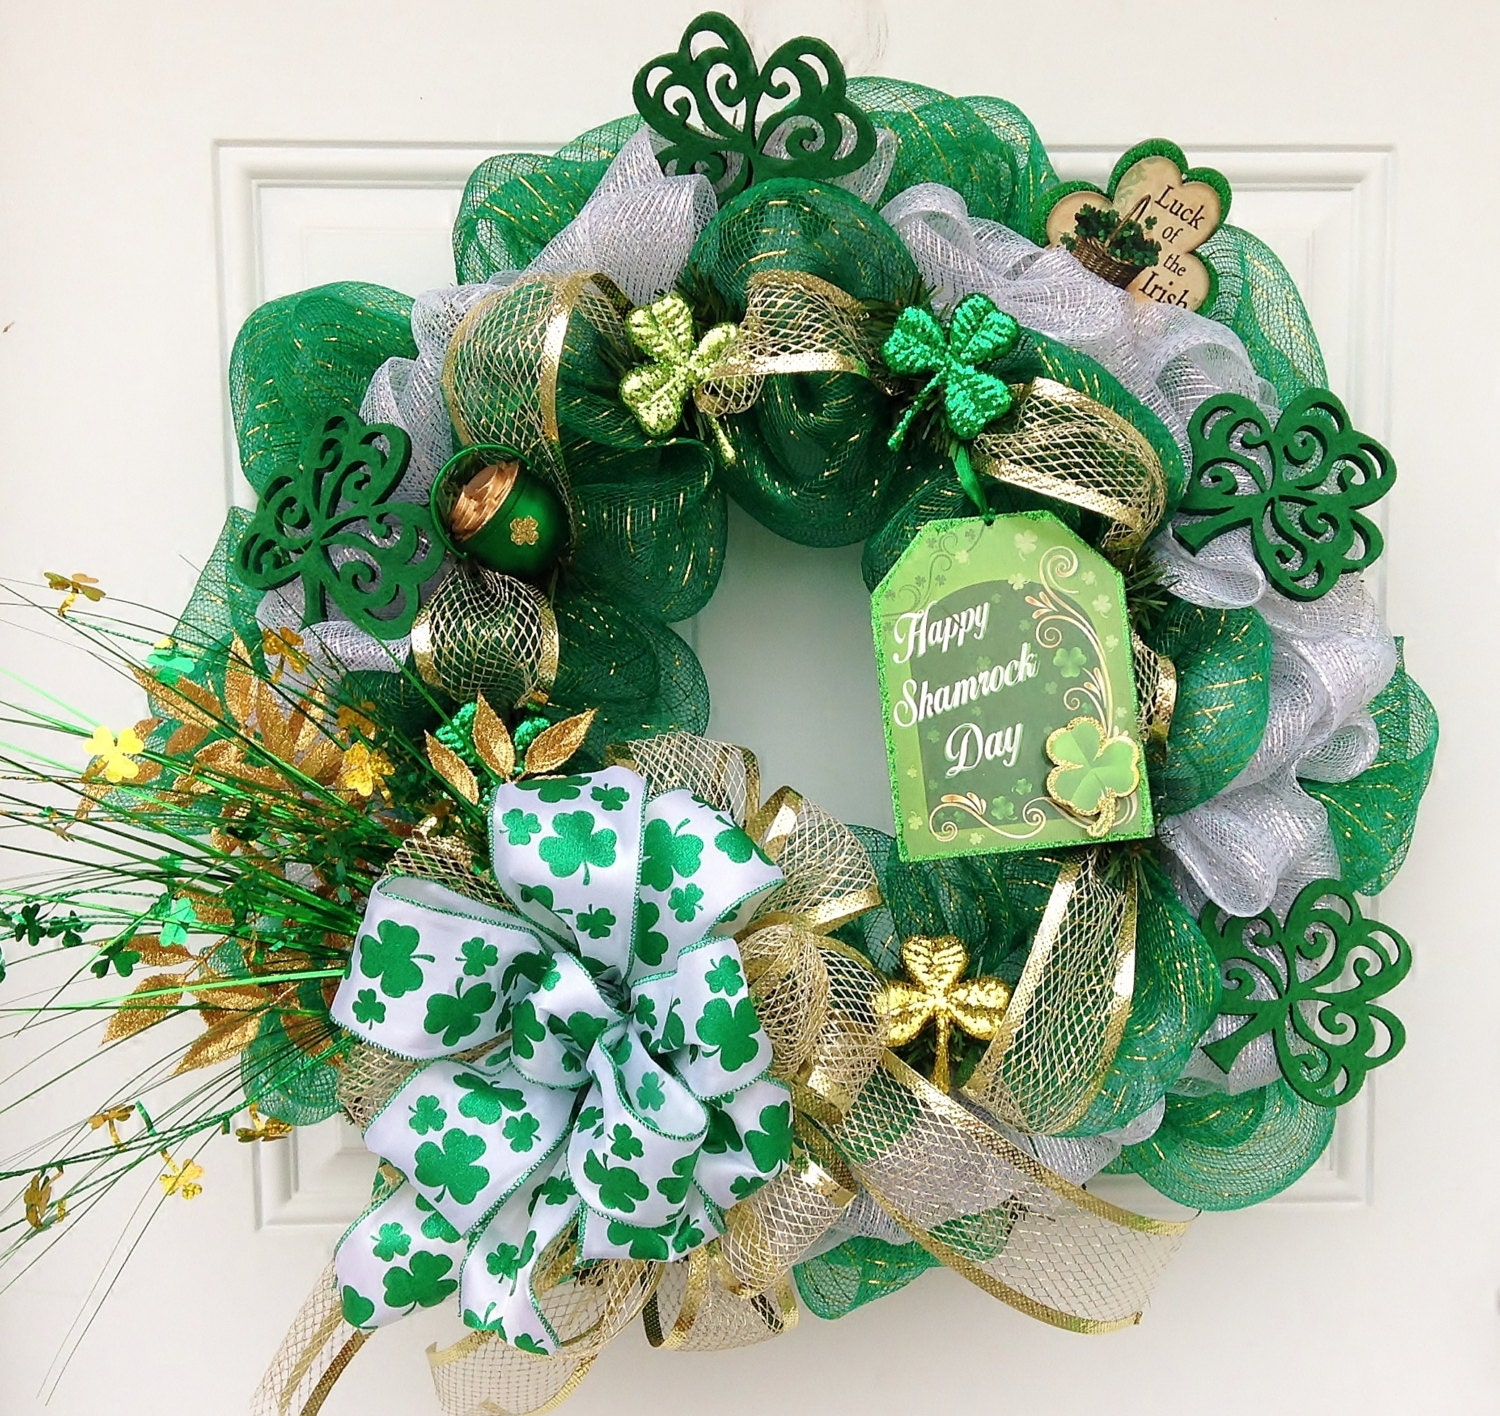 st patricks day deco mesh wreath. Black Bedroom Furniture Sets. Home Design Ideas